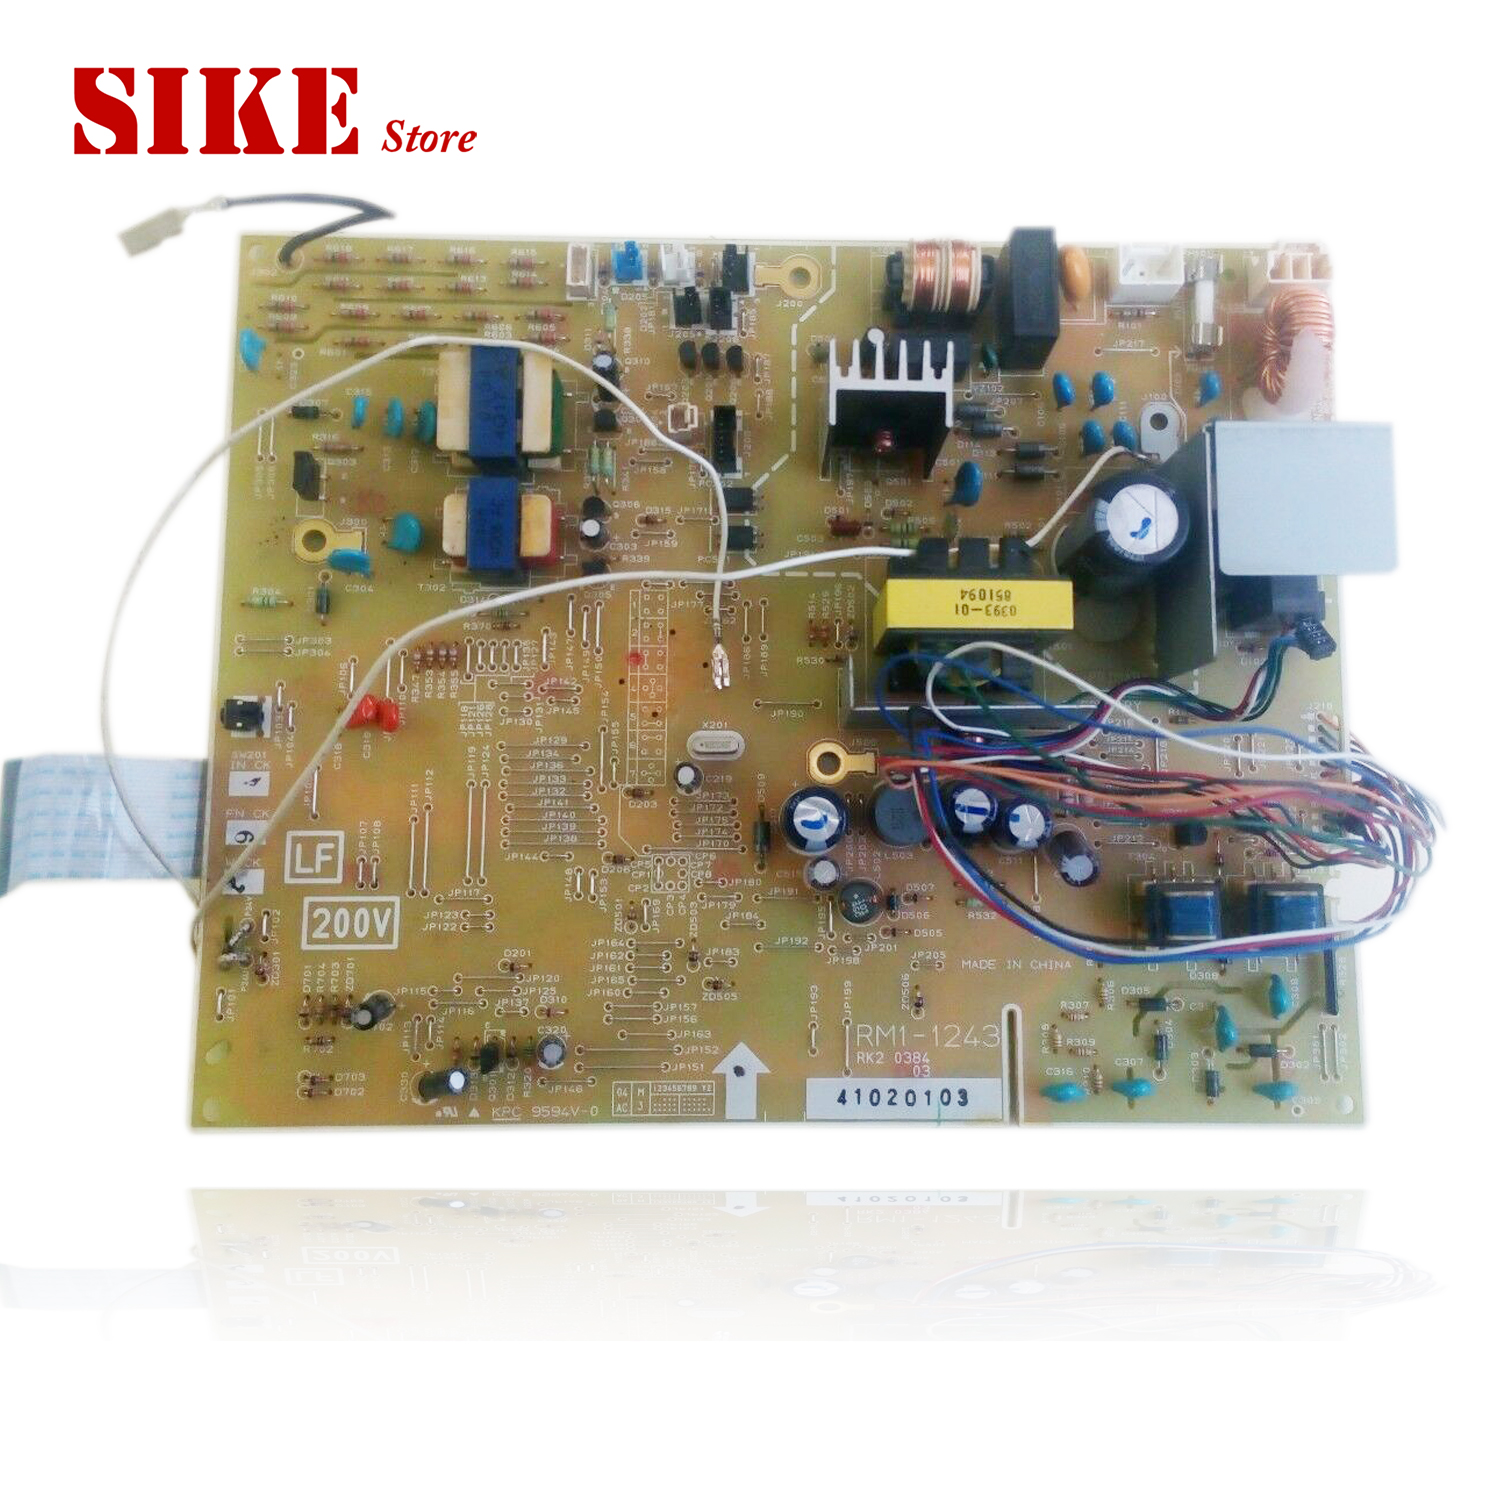 RM1-1242 RM1-1243 Engine Control Power Board For HP 1320 1320n 1320nw 1320tn 1160 <font><b>HP1320</b></font> HP1160 Voltage Power Supply Board image